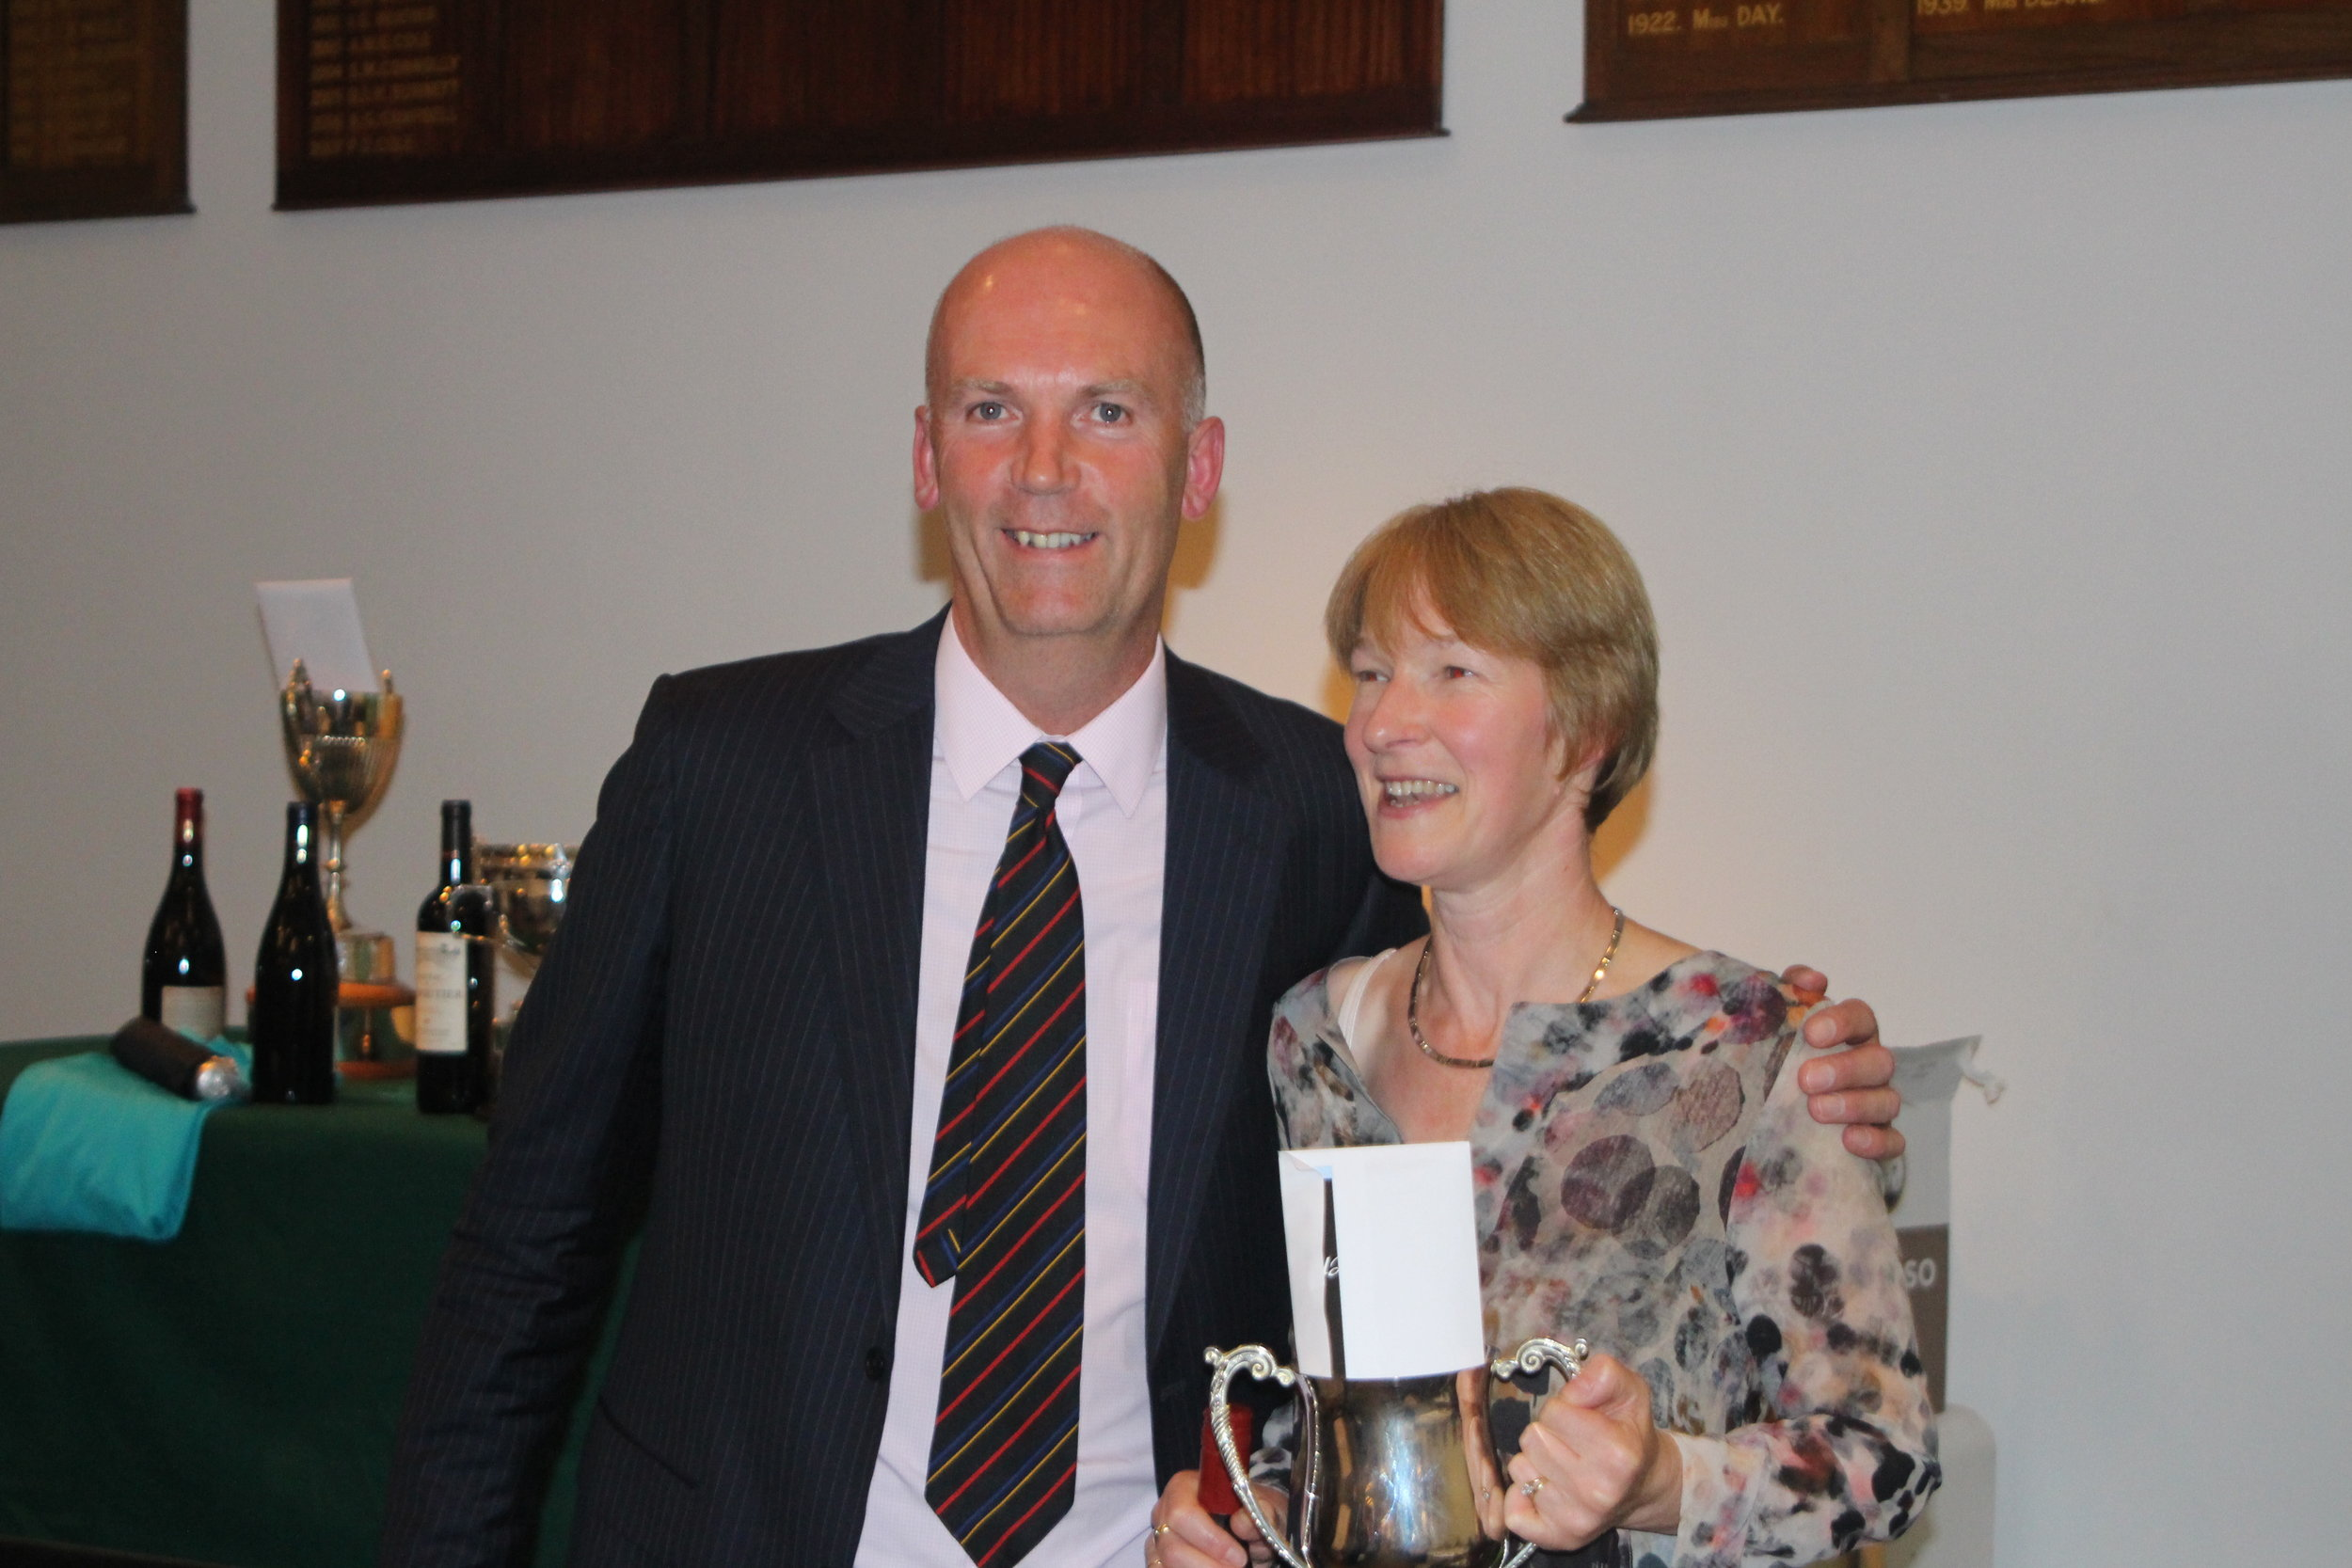 John Gillis with Kara Browning the winner of the Ladies Trophy